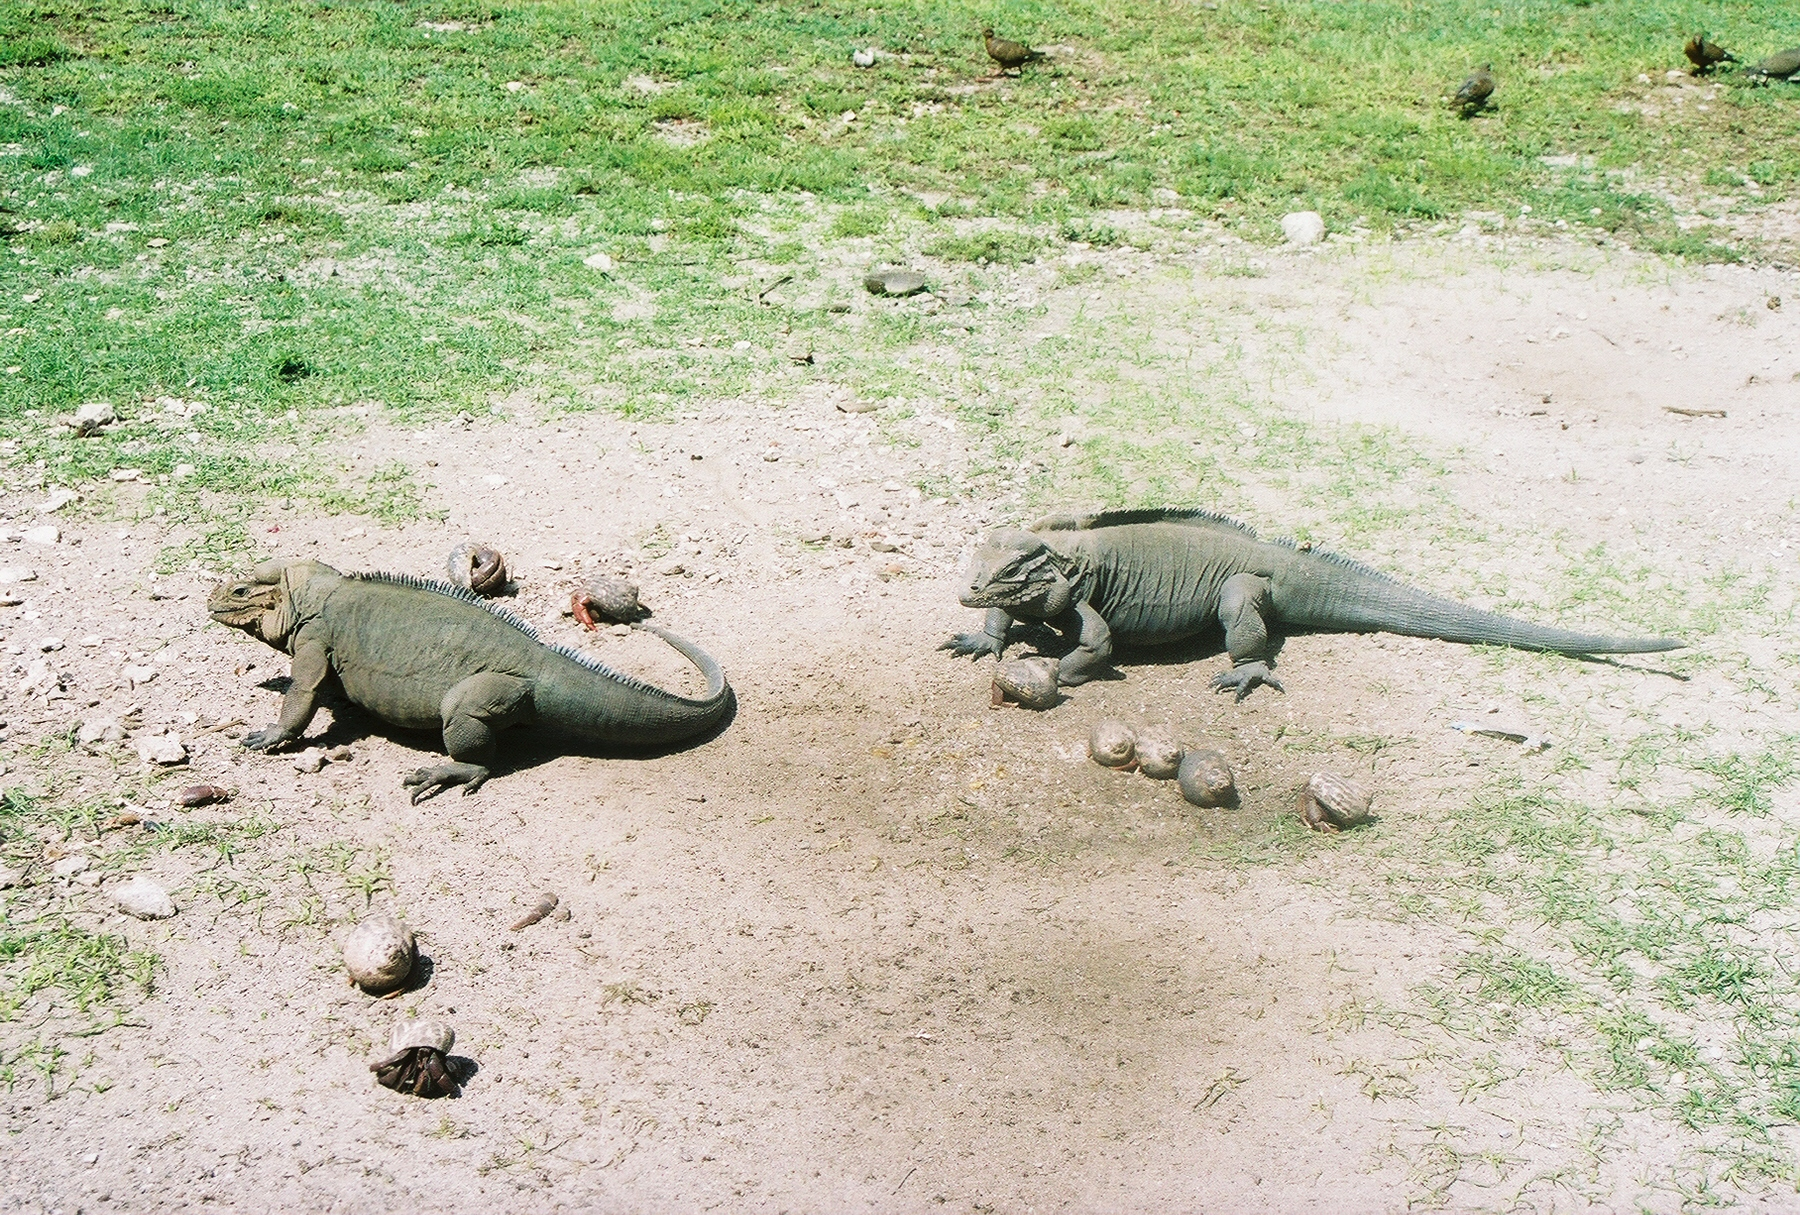 The Mona Island iguana can't be found in any other part of the world. Photo: Pamy Rojas